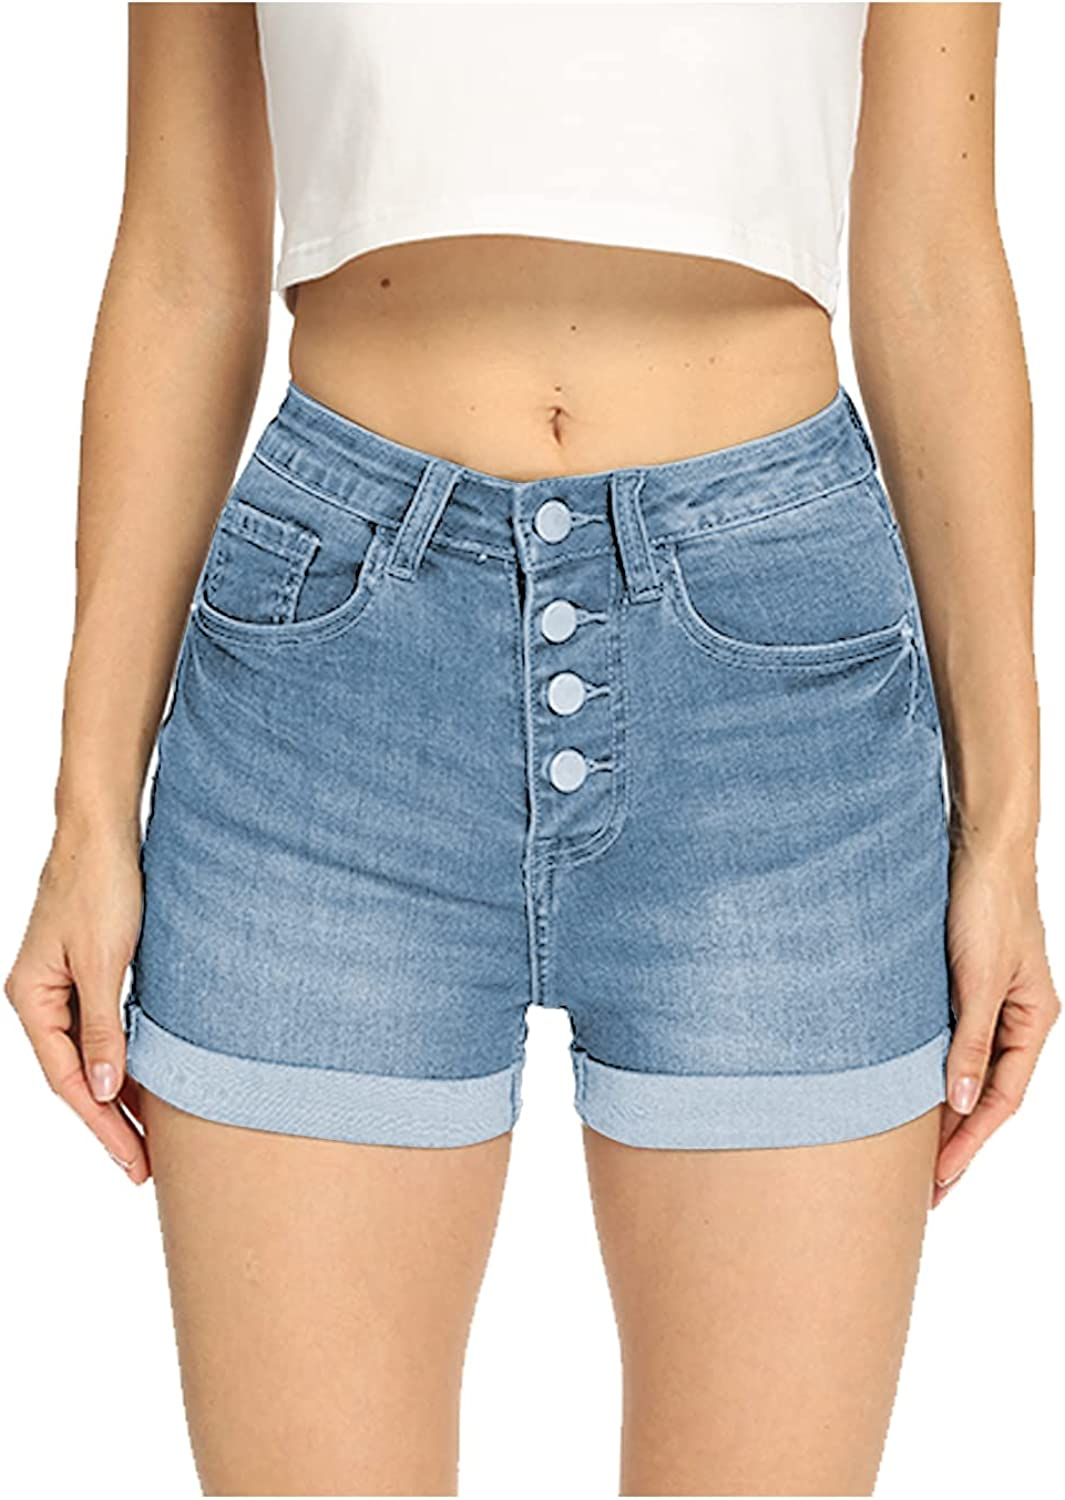 Denim Shorts for Women High Waisted Comfy Stretchy Ripped Jean Shorts (10, Light Blue # 5)